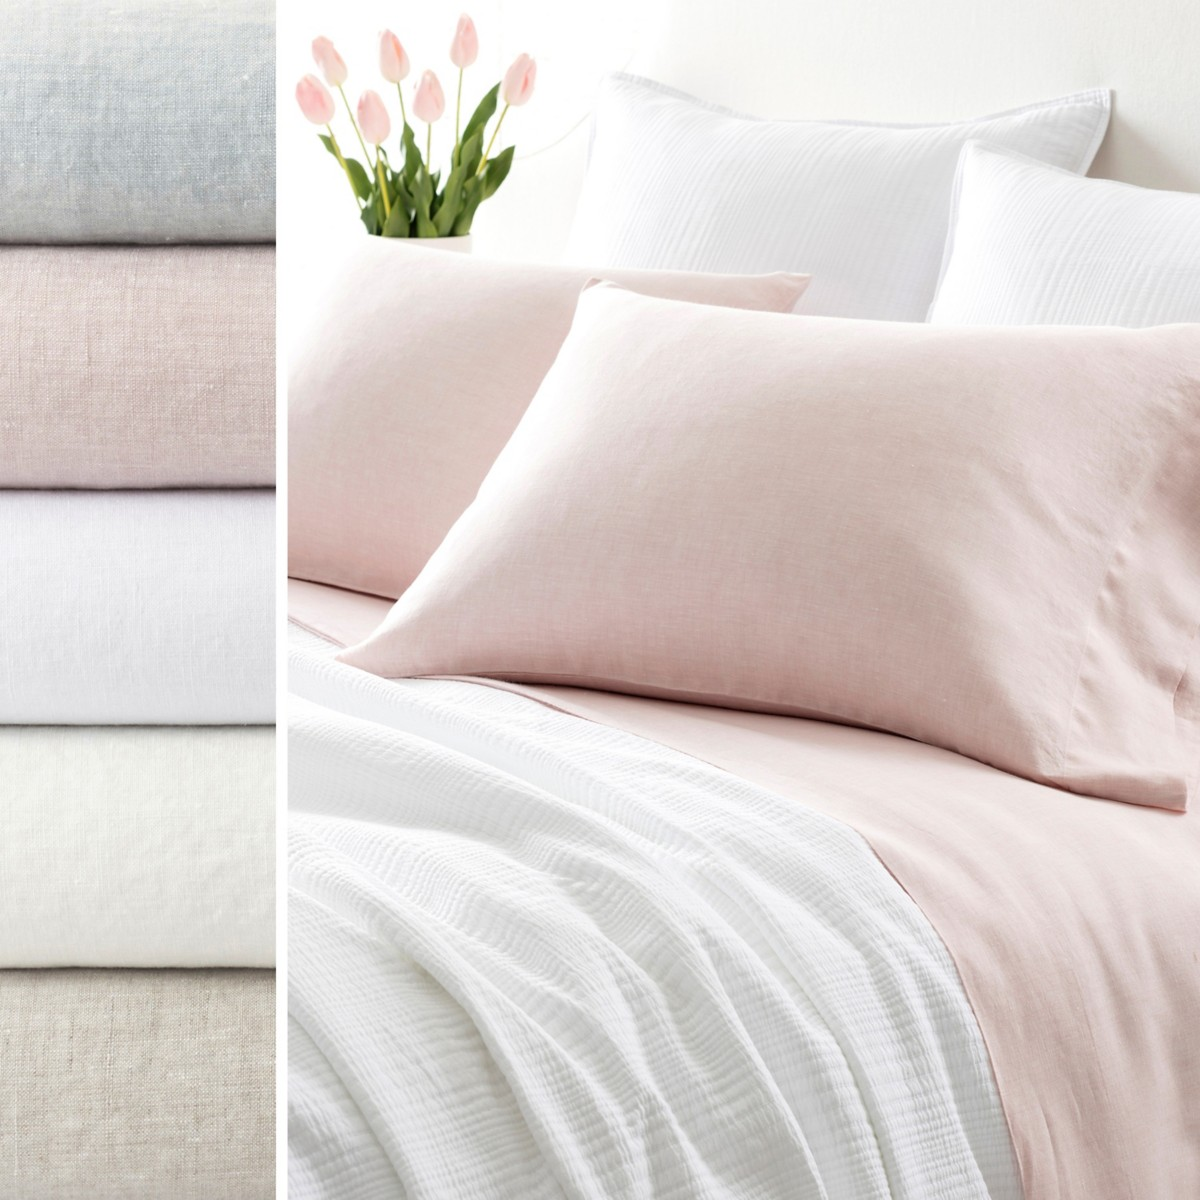 Lush Linen Sheet Set and Pillowcases